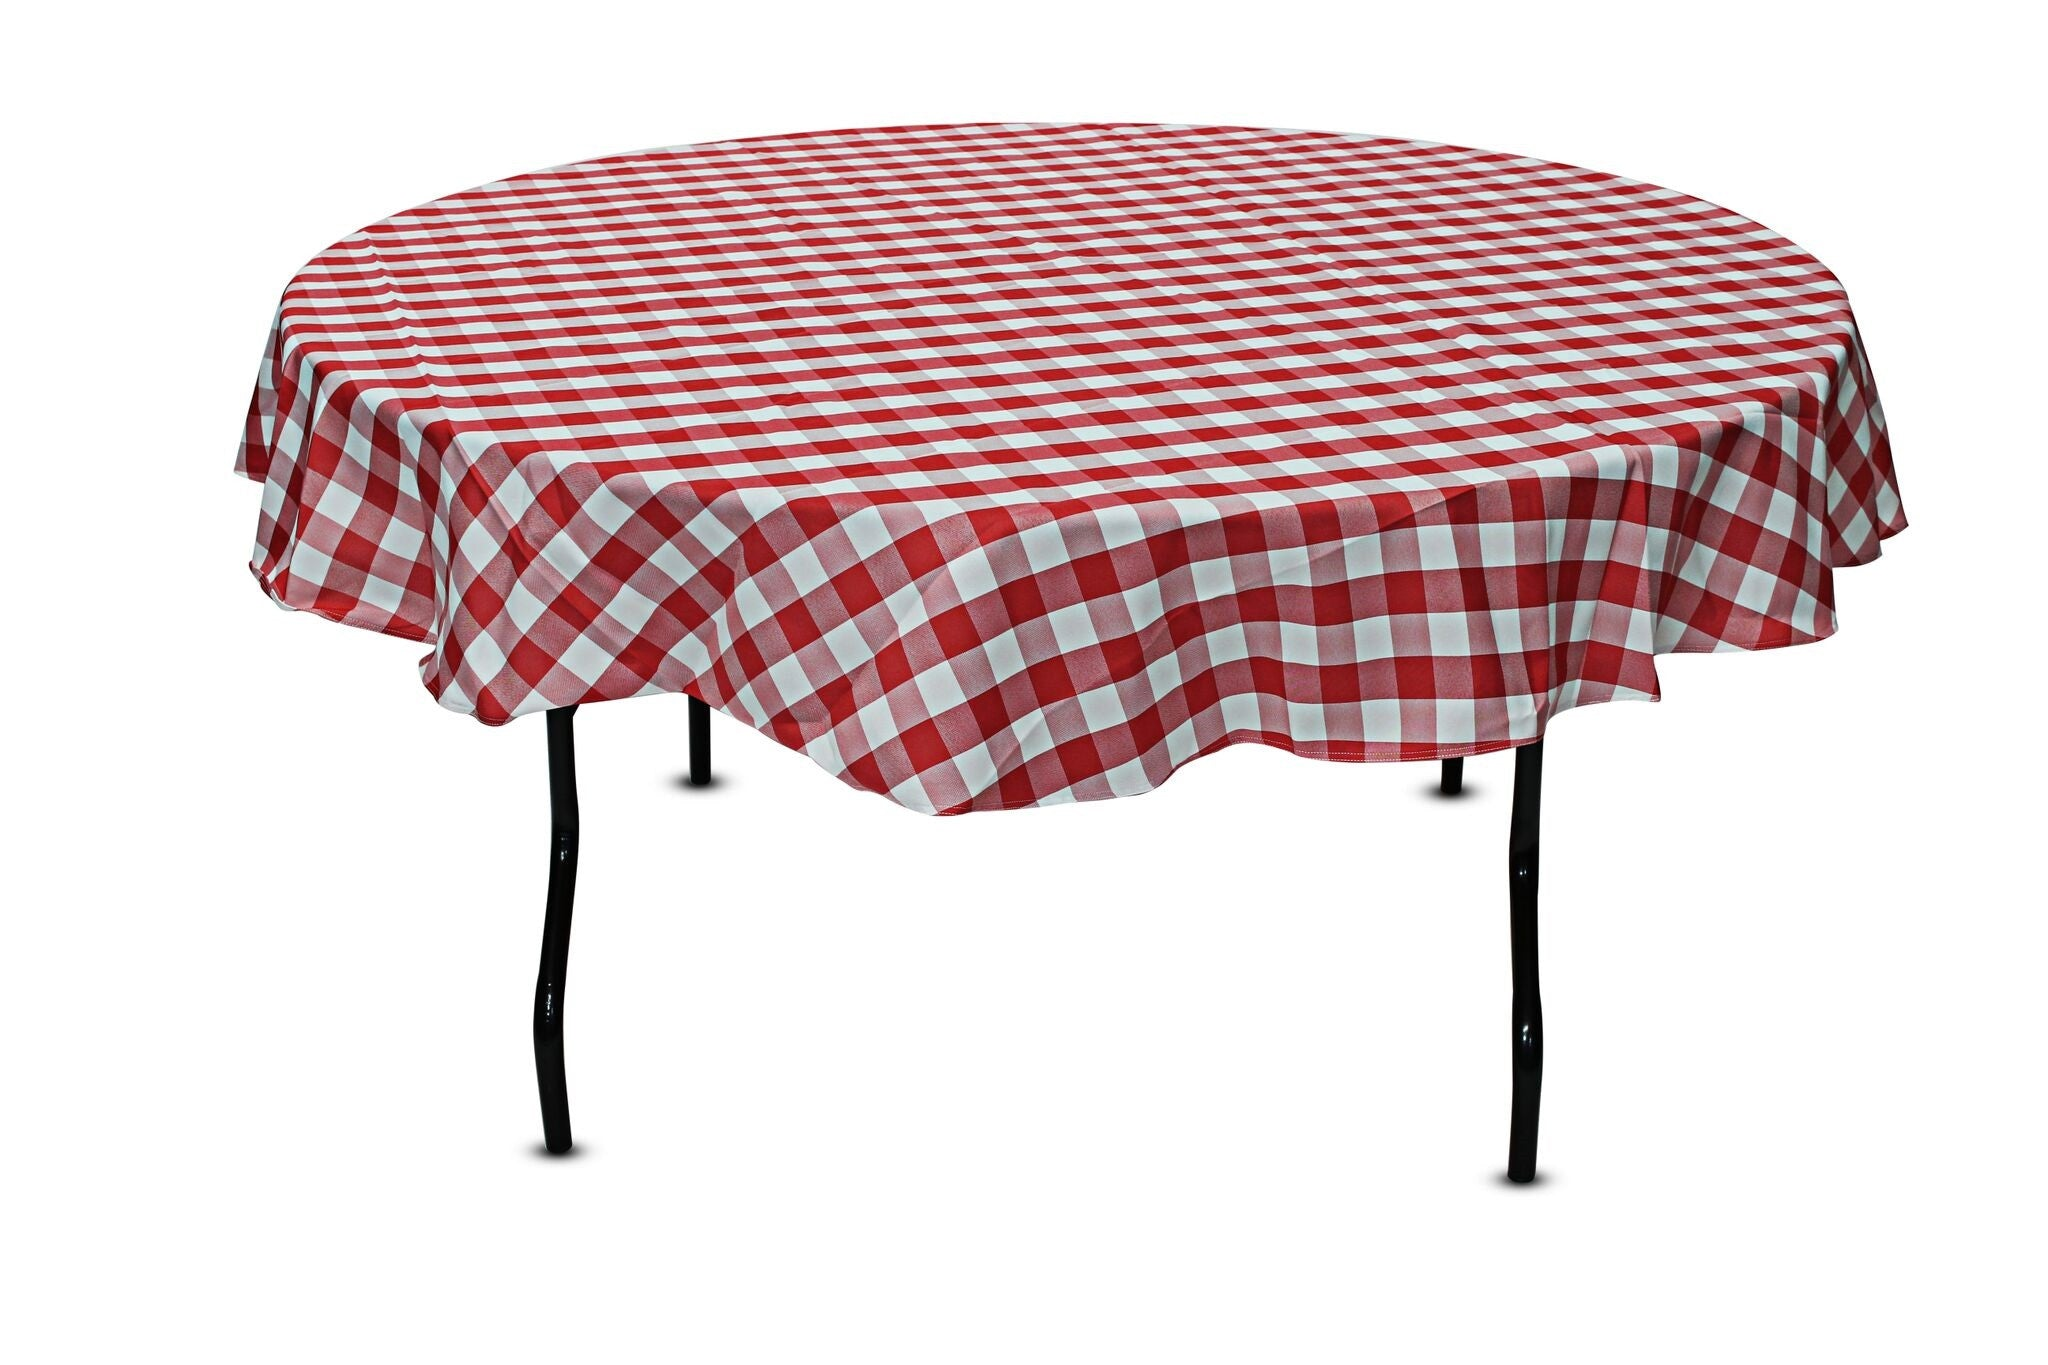 Superb 80u0027u0027 Round Checkered Tablecloth ...